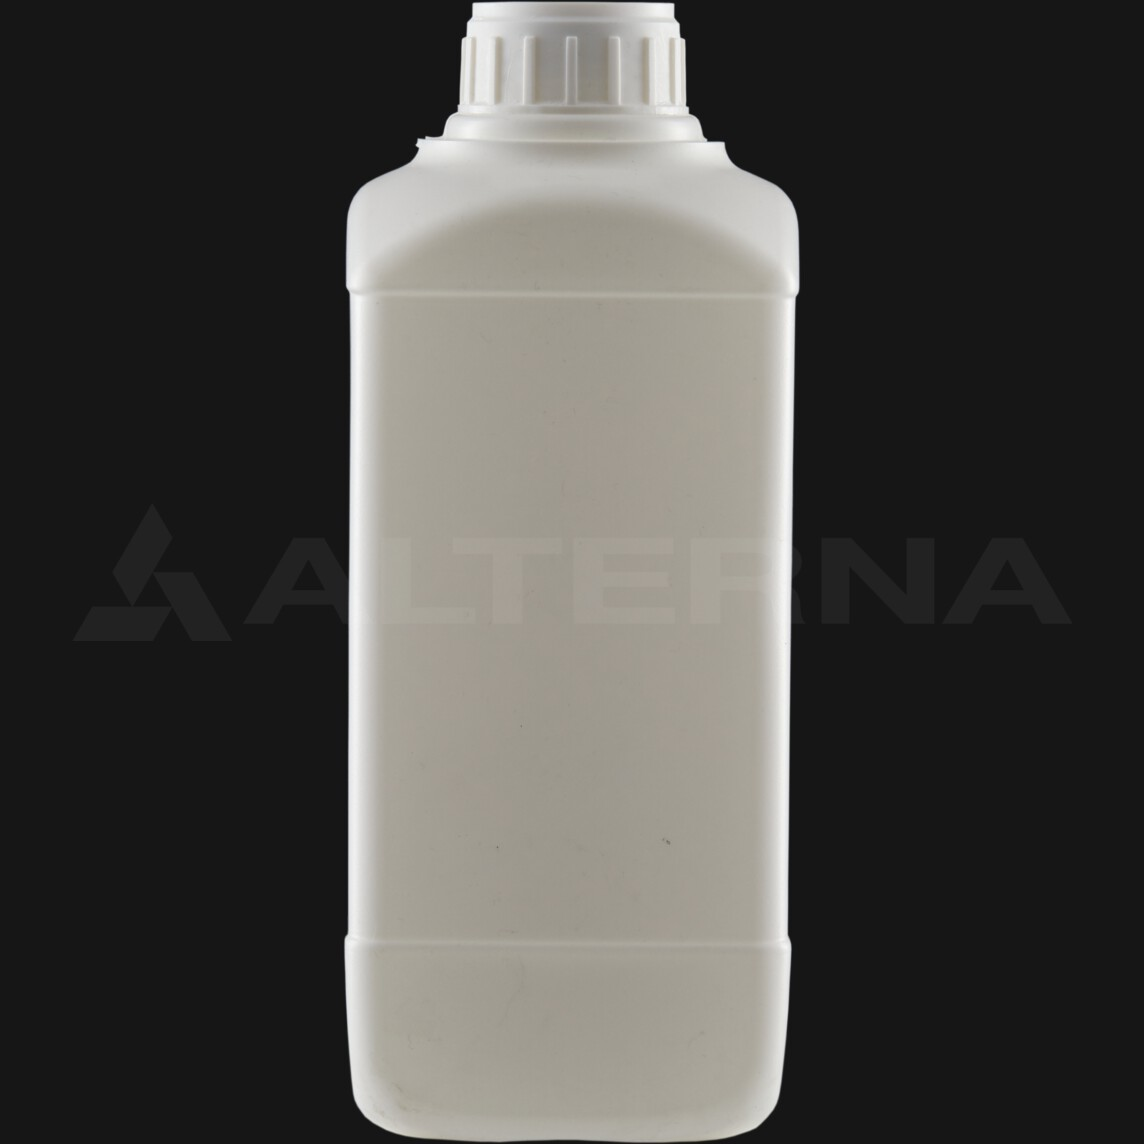 1000 ml HDPE Square Bottle with 38 mm Alu. Foil Seal Cap